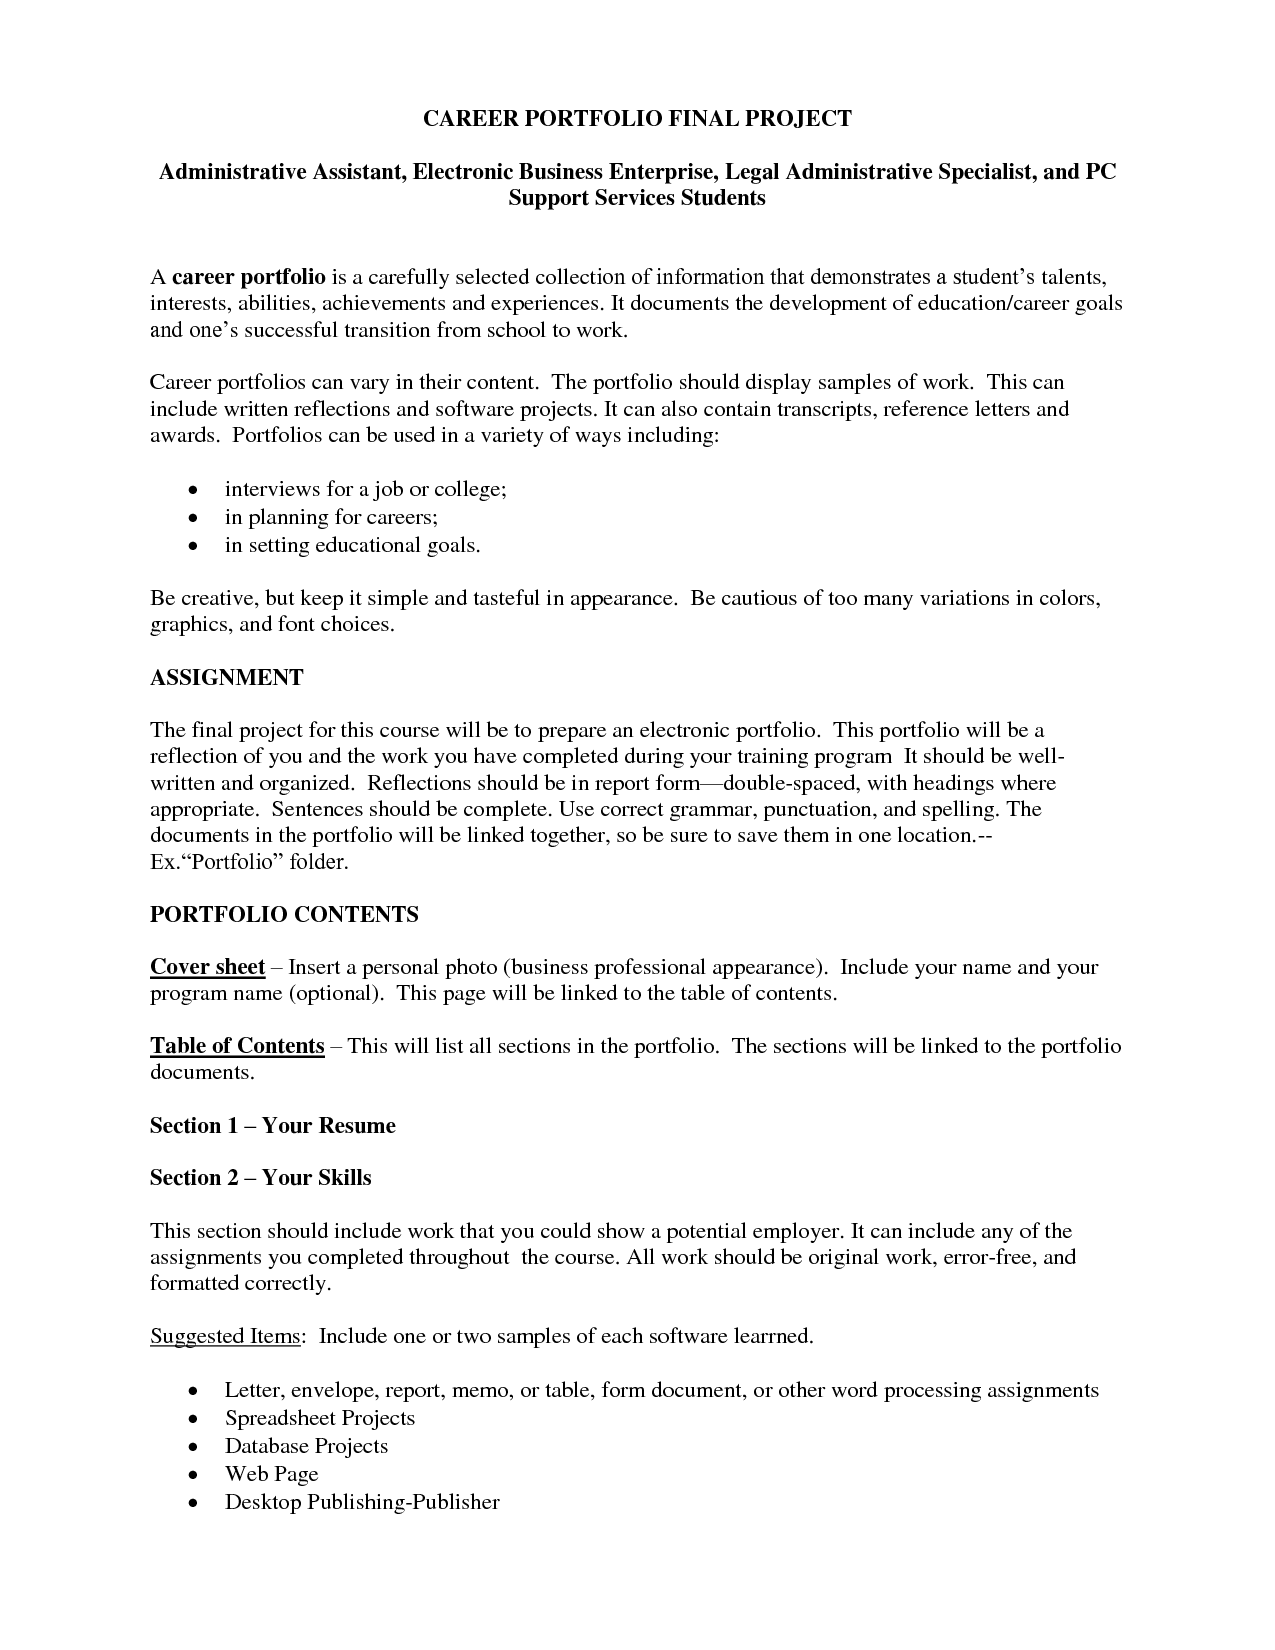 Administrative Assistant Resume Sample Legal Administrative Resume Samples  Httpersumelegal